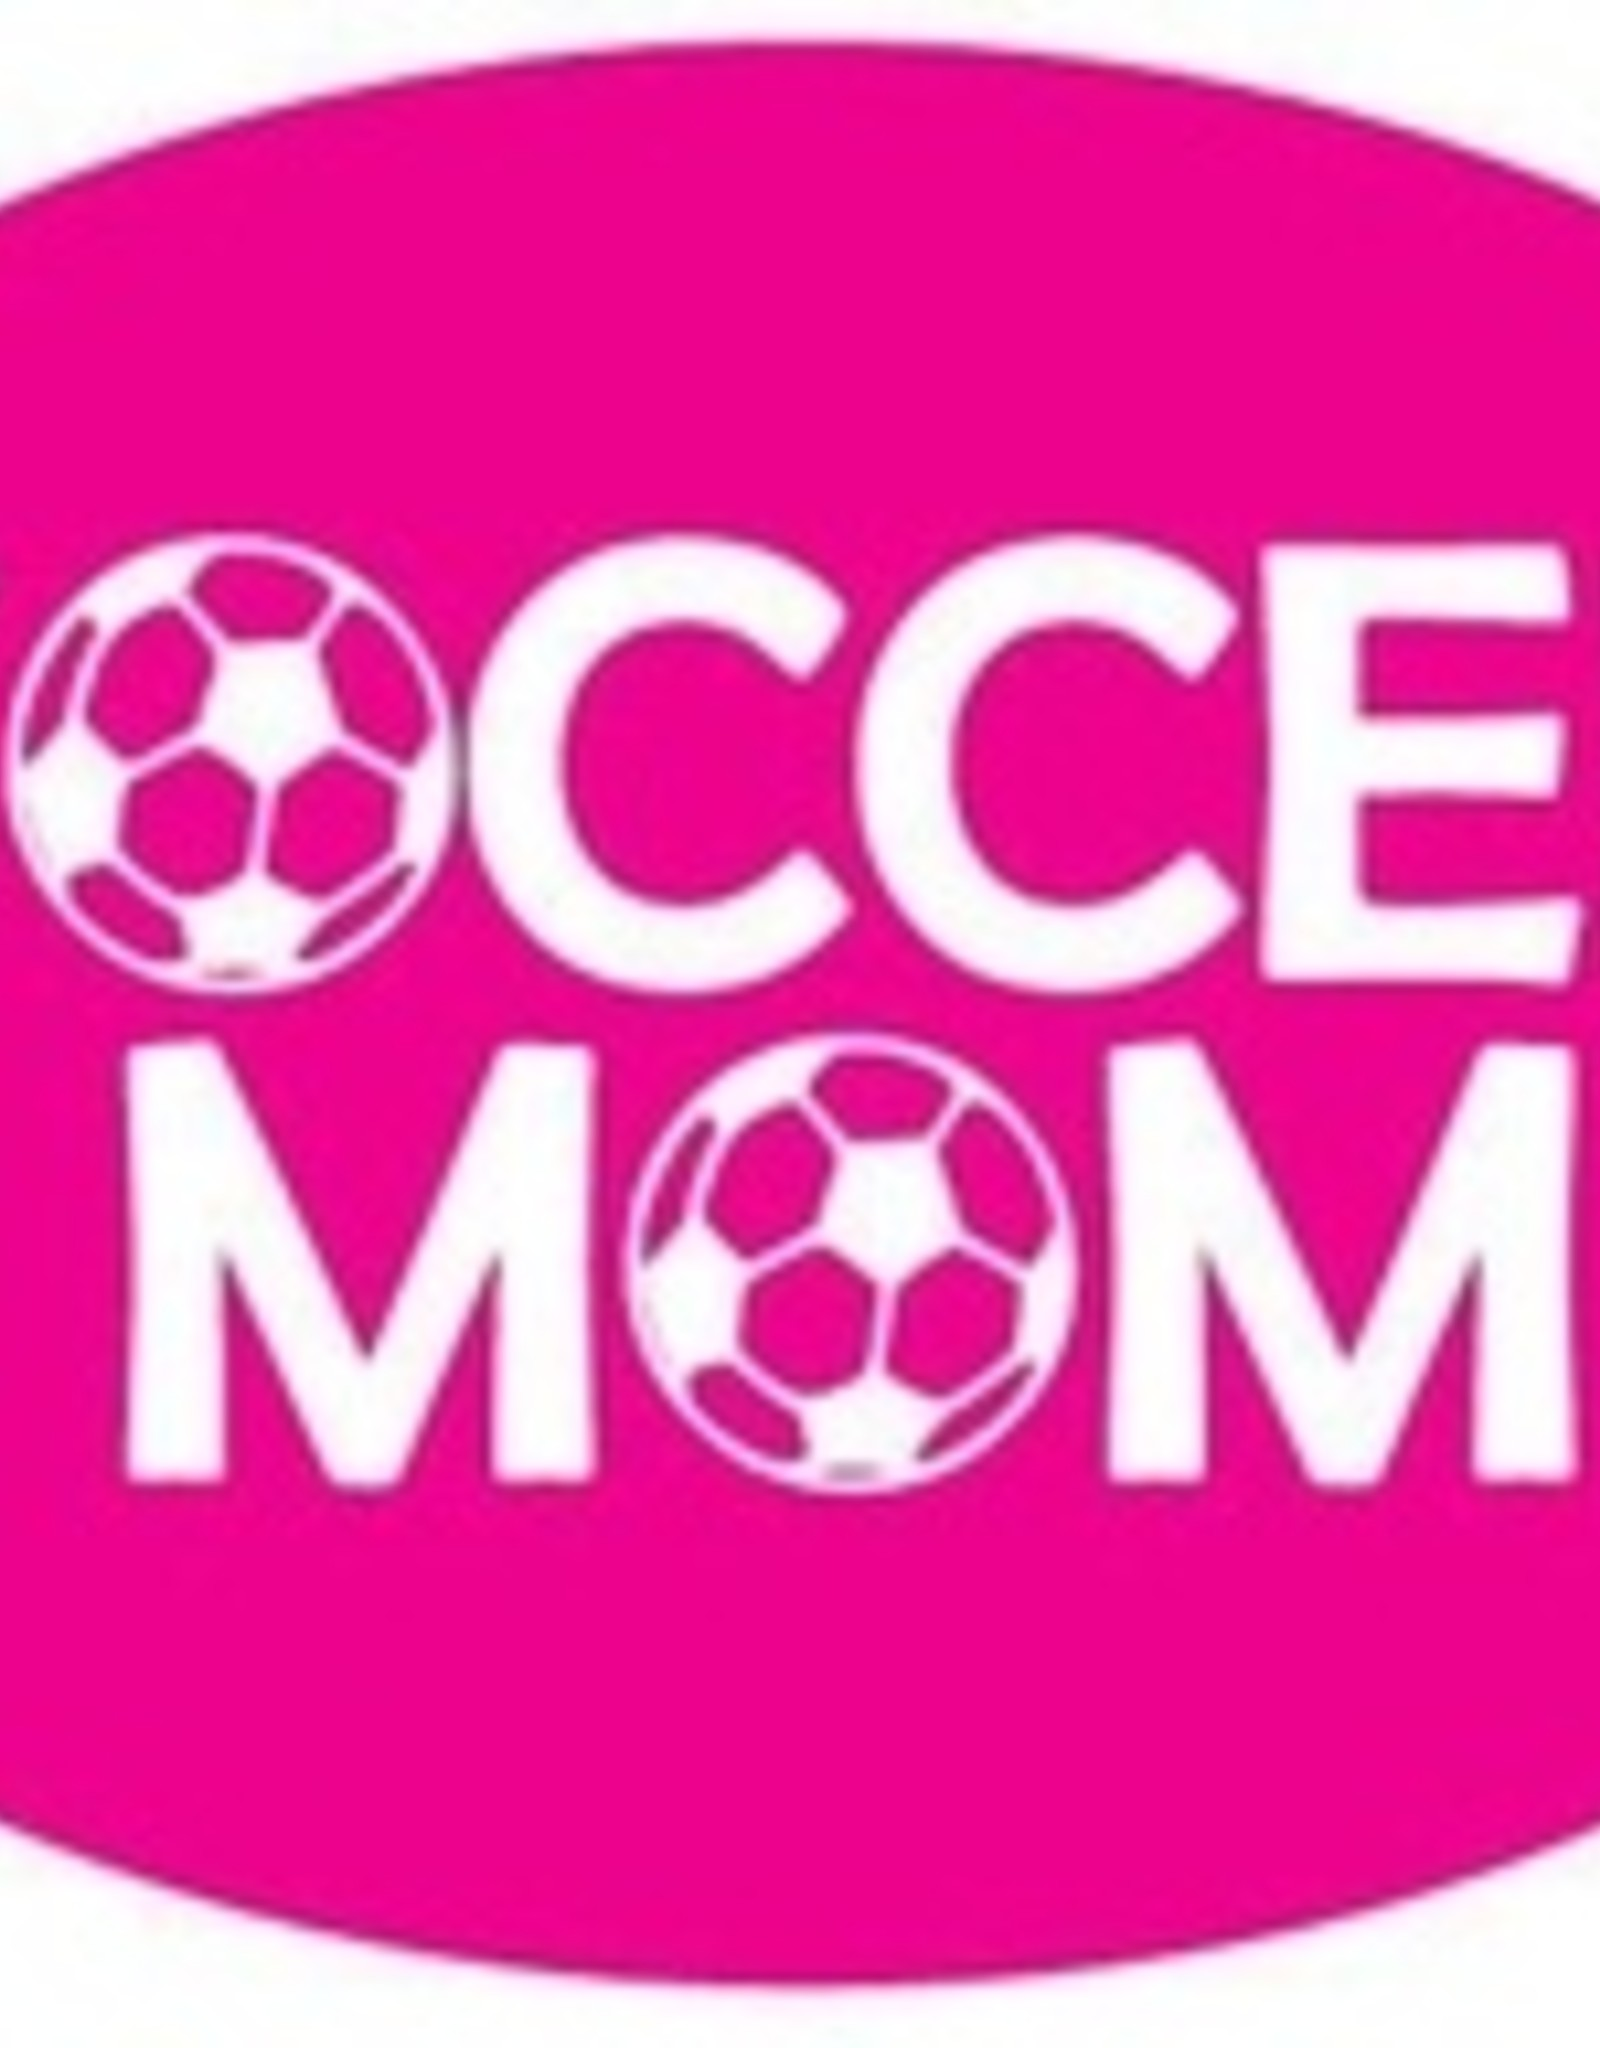 Soccer Mom Decal - Pink